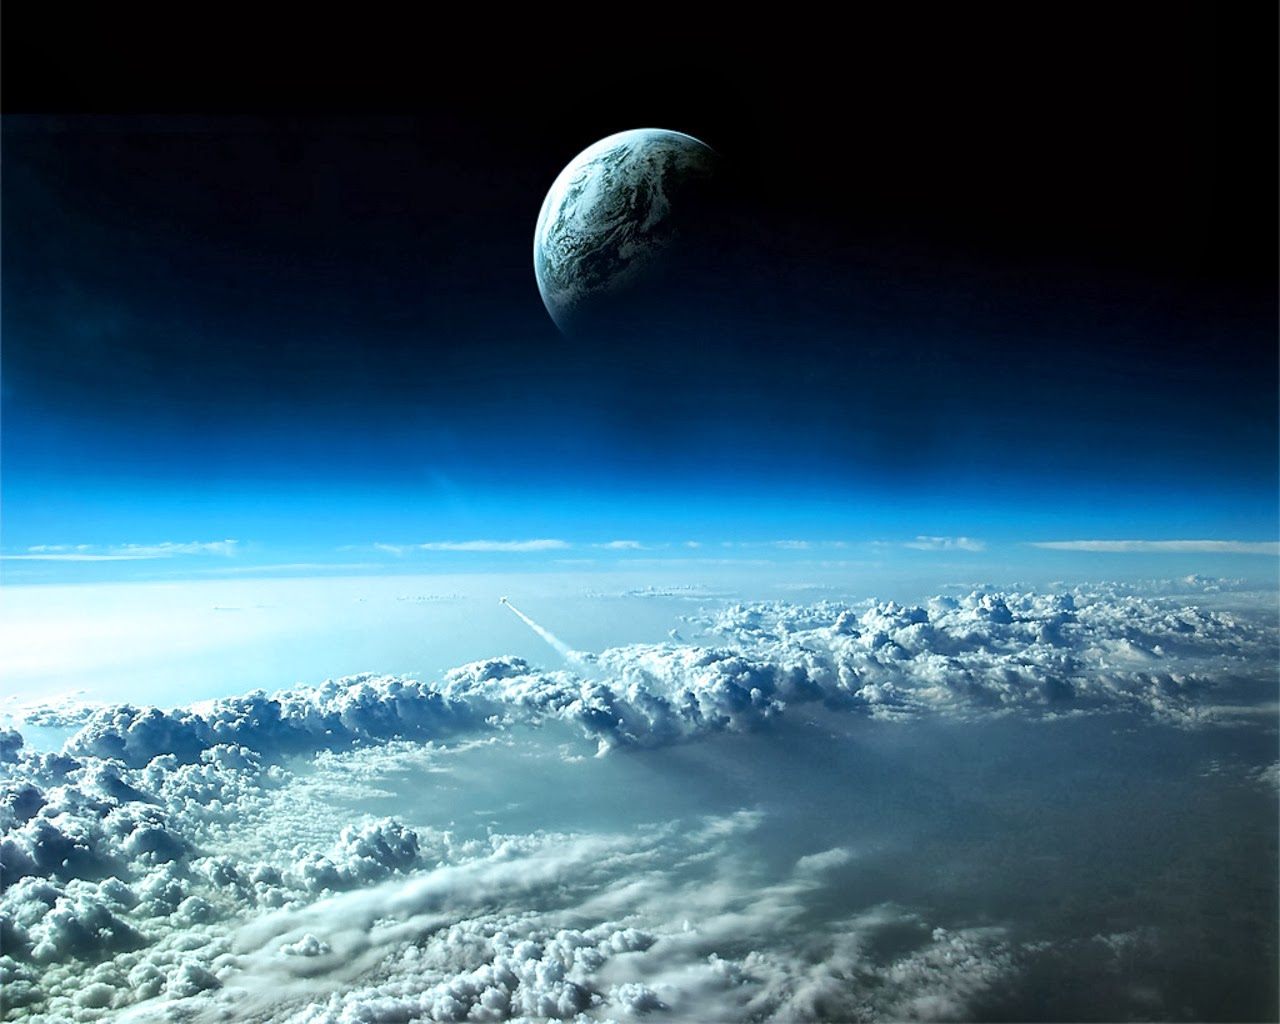 Wallpaper earth from space space wallpaper - Earth from space wallpaper ...